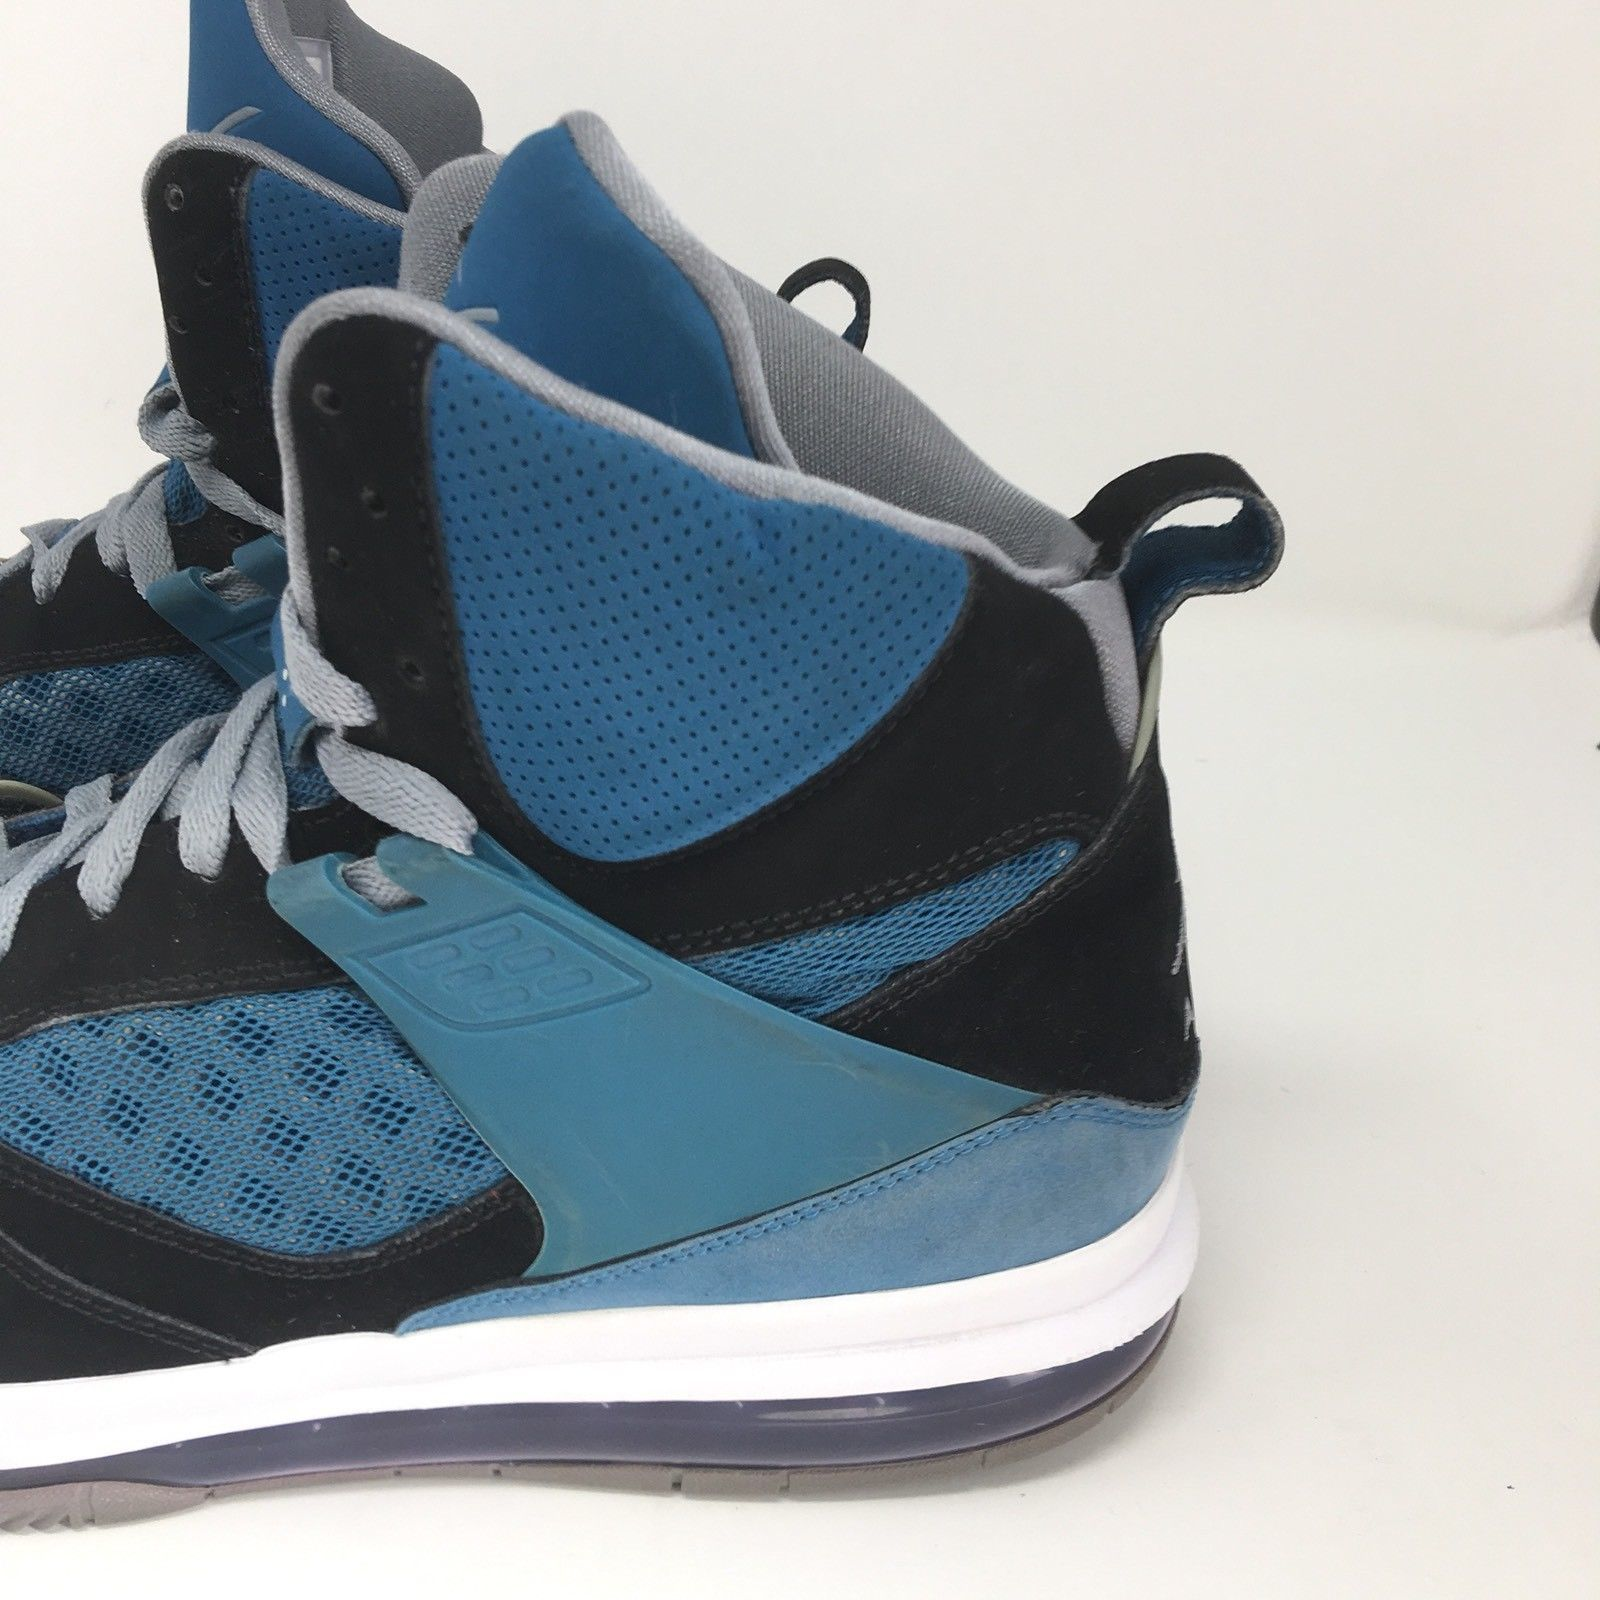 quality design f6ecc d8849 ... Nike Air Jordan Flight 45 Hi Max Dwayne Wade Basketball Shoes 524866-007  Size 9 ...